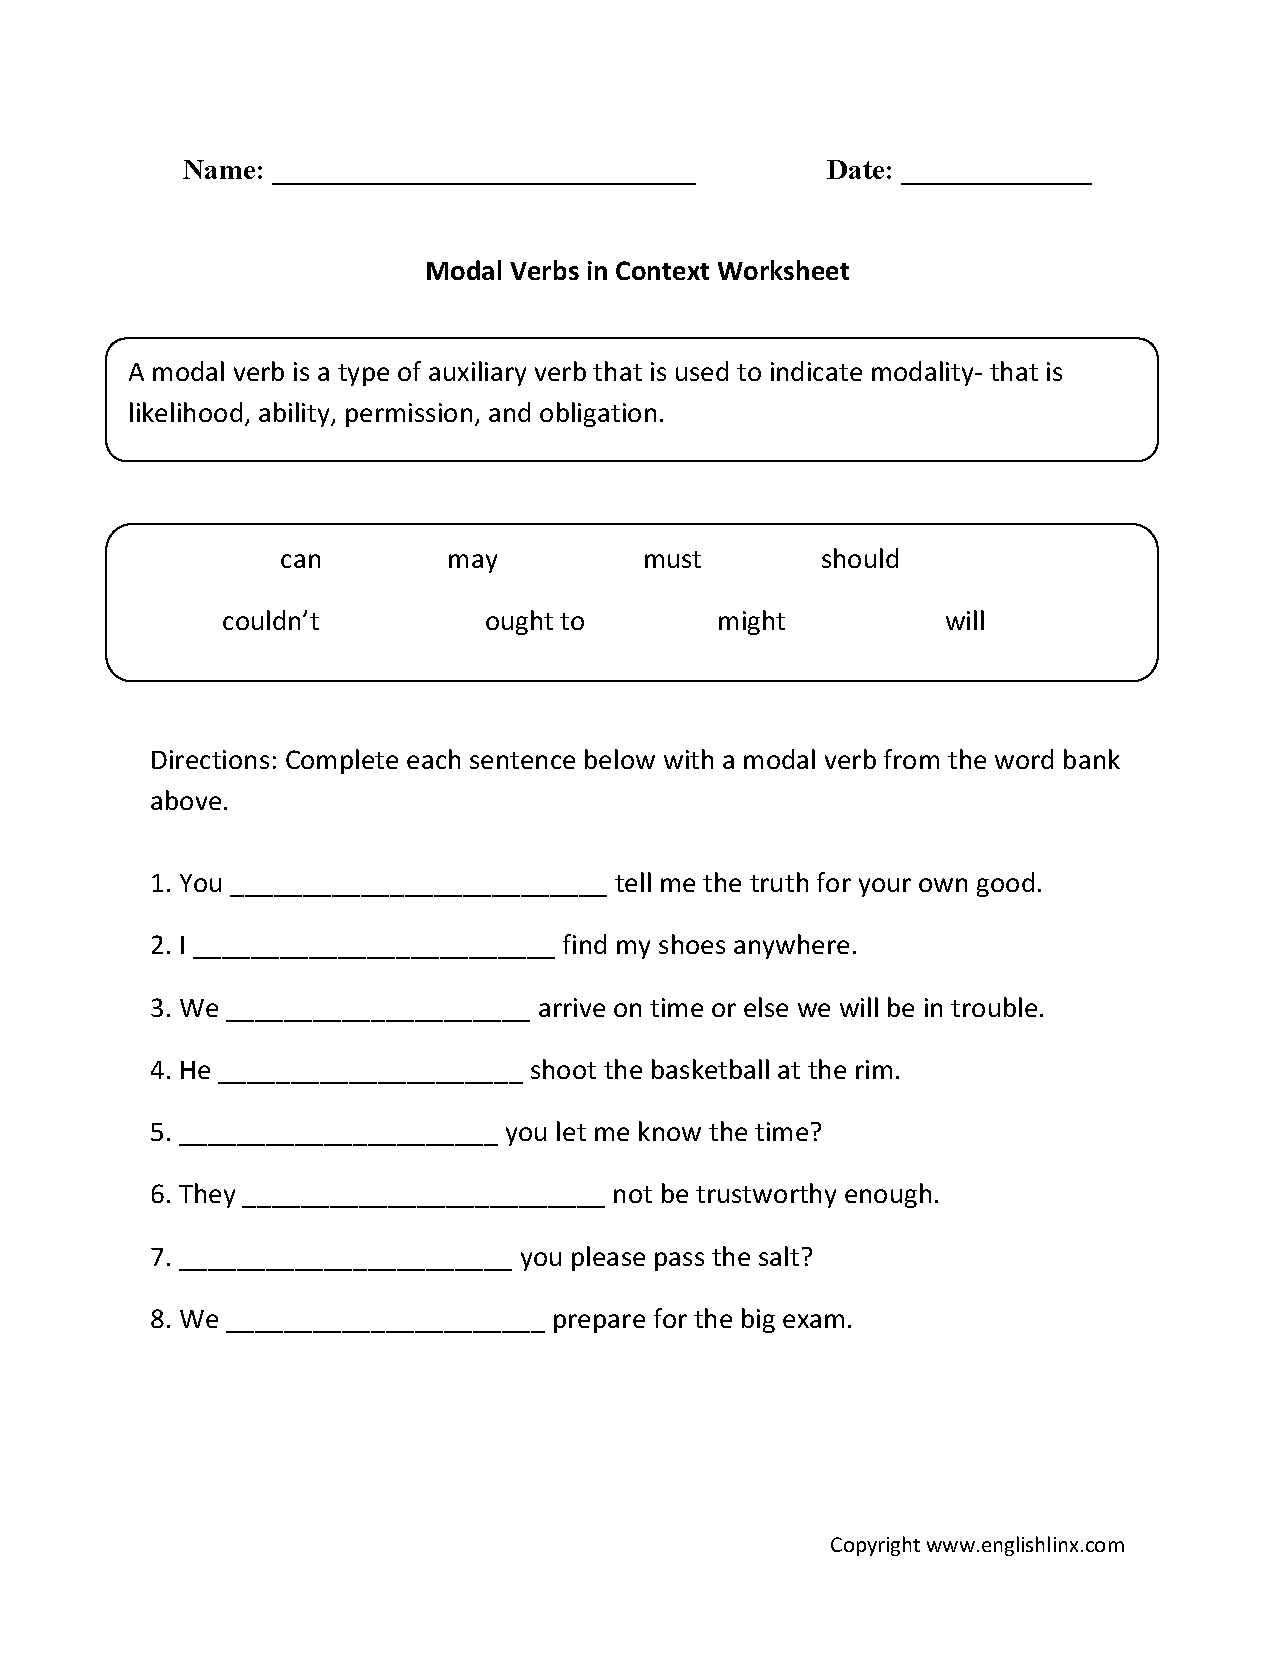 Aldiablosus  Seductive Worksheet For Verbs  Coffemix With Outstanding Englishlinxcom  Verbs Worksheets With Breathtaking Adding  To A Number Worksheets Also Th Grade Math Worksheets Printable Free In Addition Year  Maths Worksheets Printable Free And Powers And Indices Worksheet As Well As Addition Worksheet For Kids Additionally Arabic Numbers Worksheets From Coffemixcom With Aldiablosus  Outstanding Worksheet For Verbs  Coffemix With Breathtaking Englishlinxcom  Verbs Worksheets And Seductive Adding  To A Number Worksheets Also Th Grade Math Worksheets Printable Free In Addition Year  Maths Worksheets Printable Free From Coffemixcom